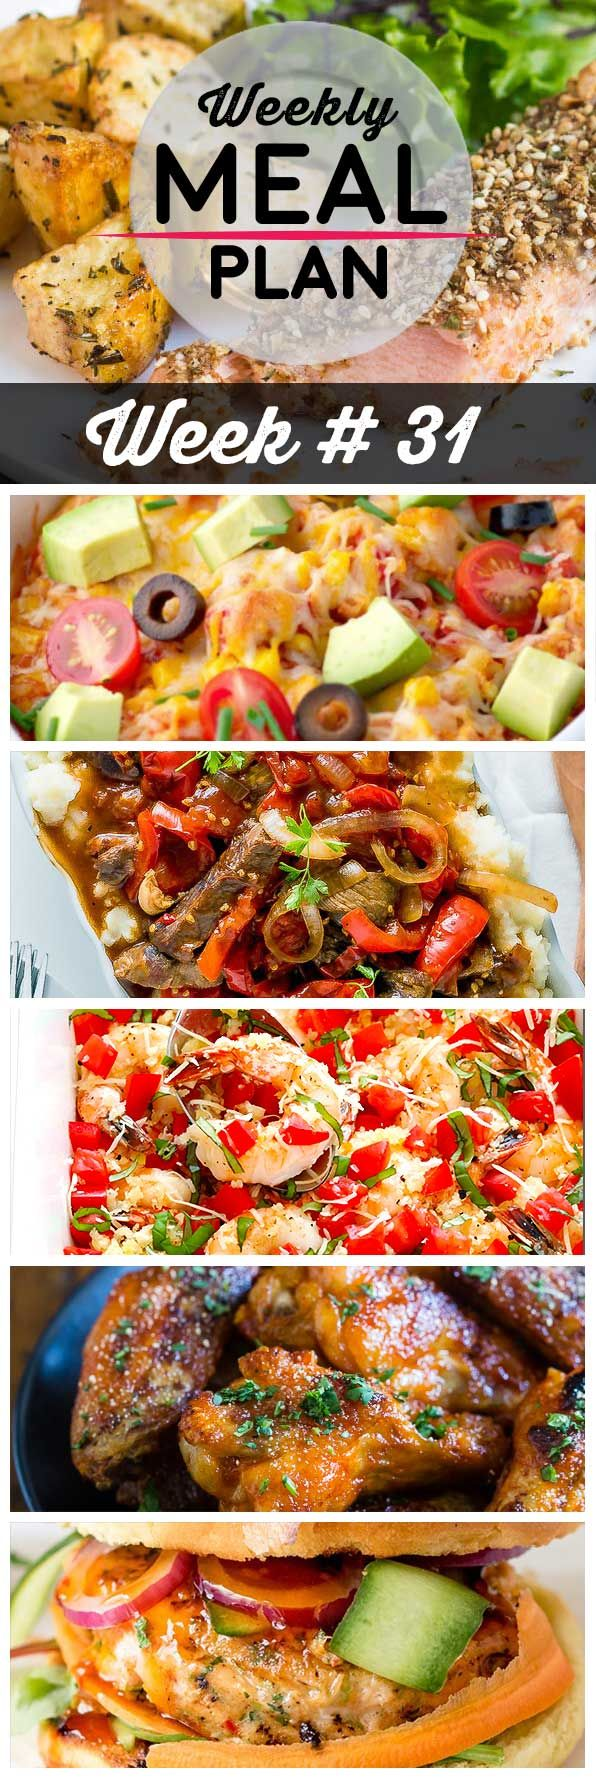 Weekly Meal Plan #31! A meal plan to help you keep things tasty each week, including dukkah crusted salmon, mexican chicken casserole, crock pot pepper steak, and more!   HomemadeHooplah.com